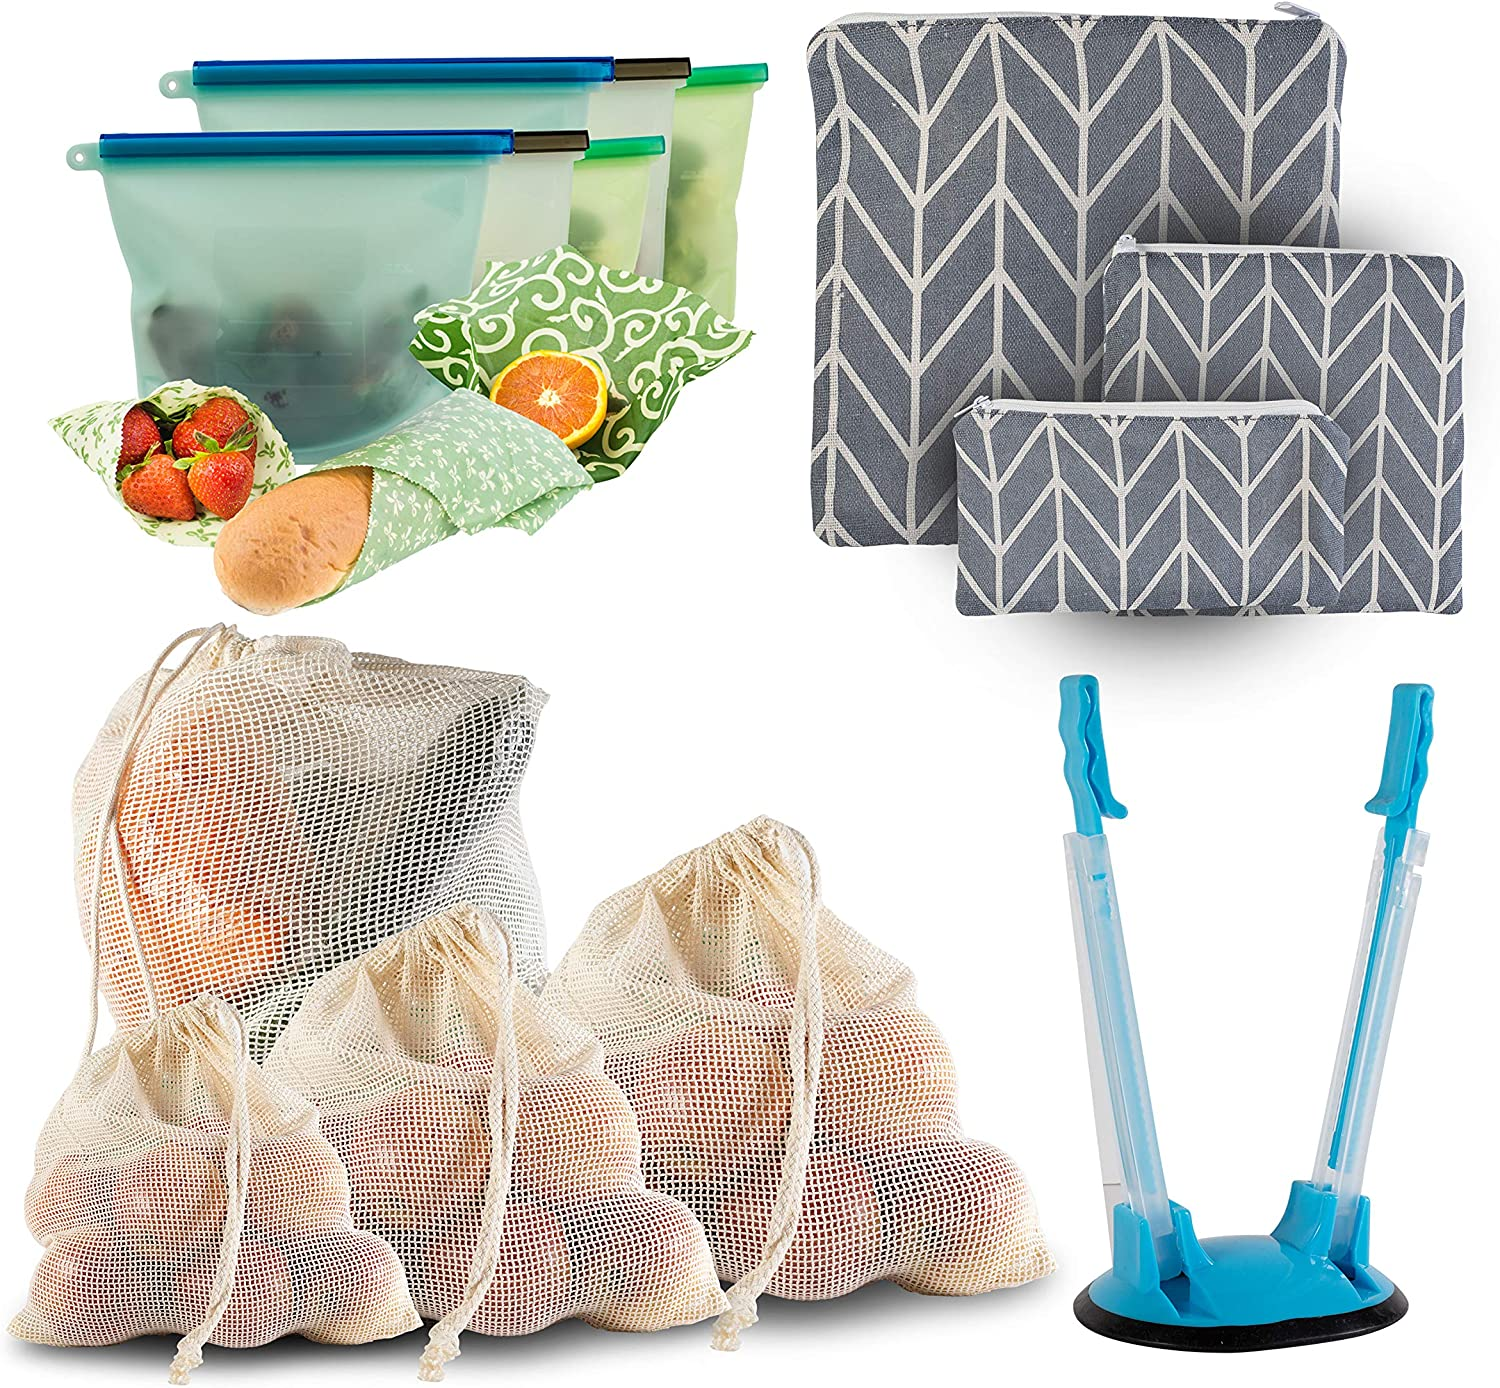 Huge 17 Pc Food Storage Set – Reusable Mesh Produce Bags, Reusable Beeswax Food Wraps, Reusable Silicone Food Storage Ziplock Bags and Reusable Zipper Snack/Sandwich Bag Pouches; Zero Waste Products